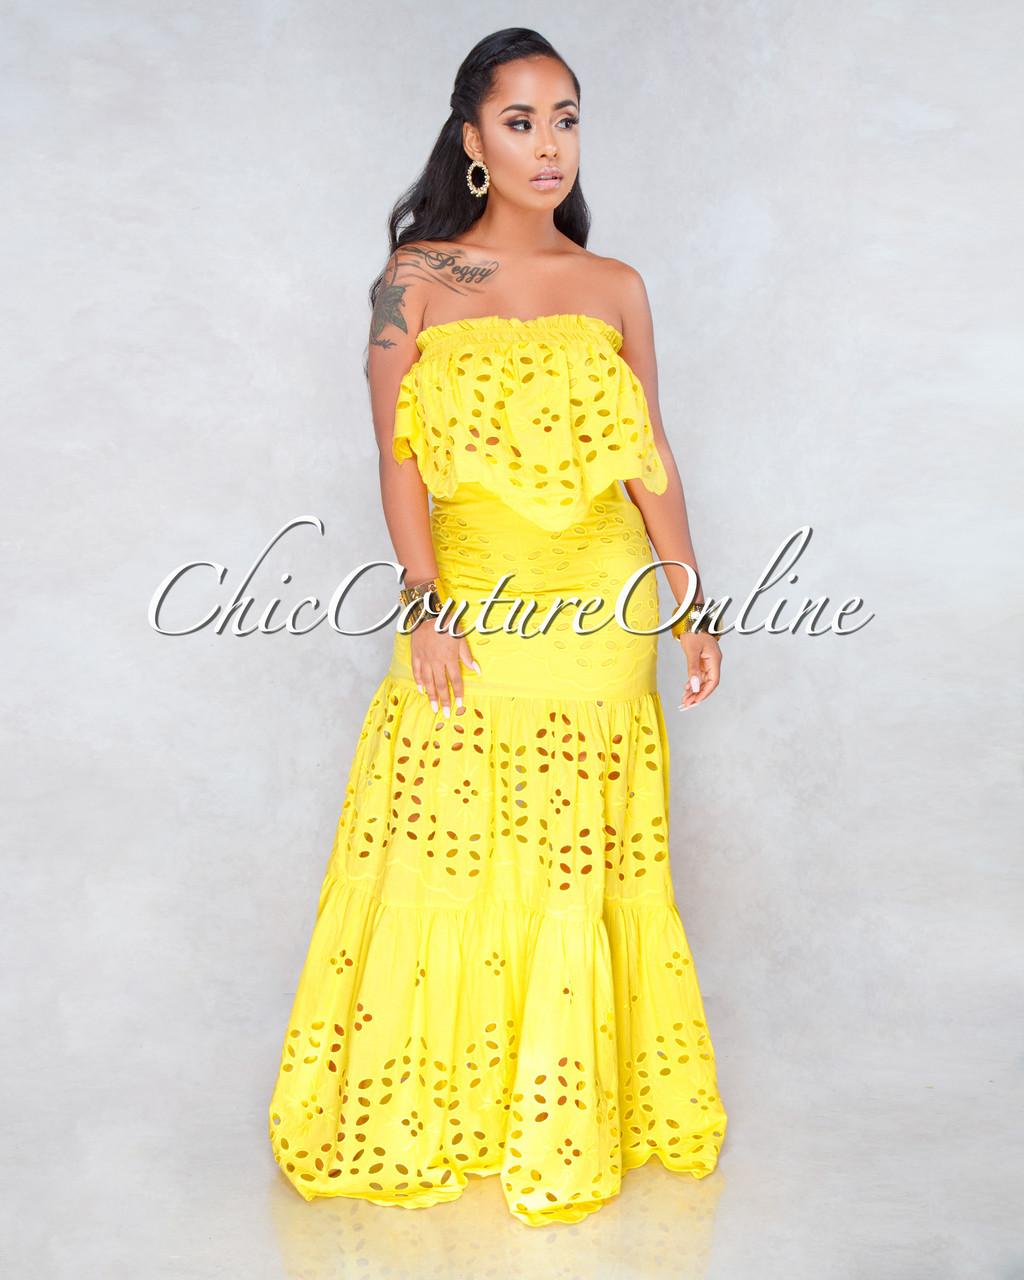 ac24e8ca5c87 Calvin Yellow Eyelet Two Piece Maxi Skirt Set. Price: $130.00. or 4  interest-free installments of $32.50 by Afterpay ⓘ. Image 1